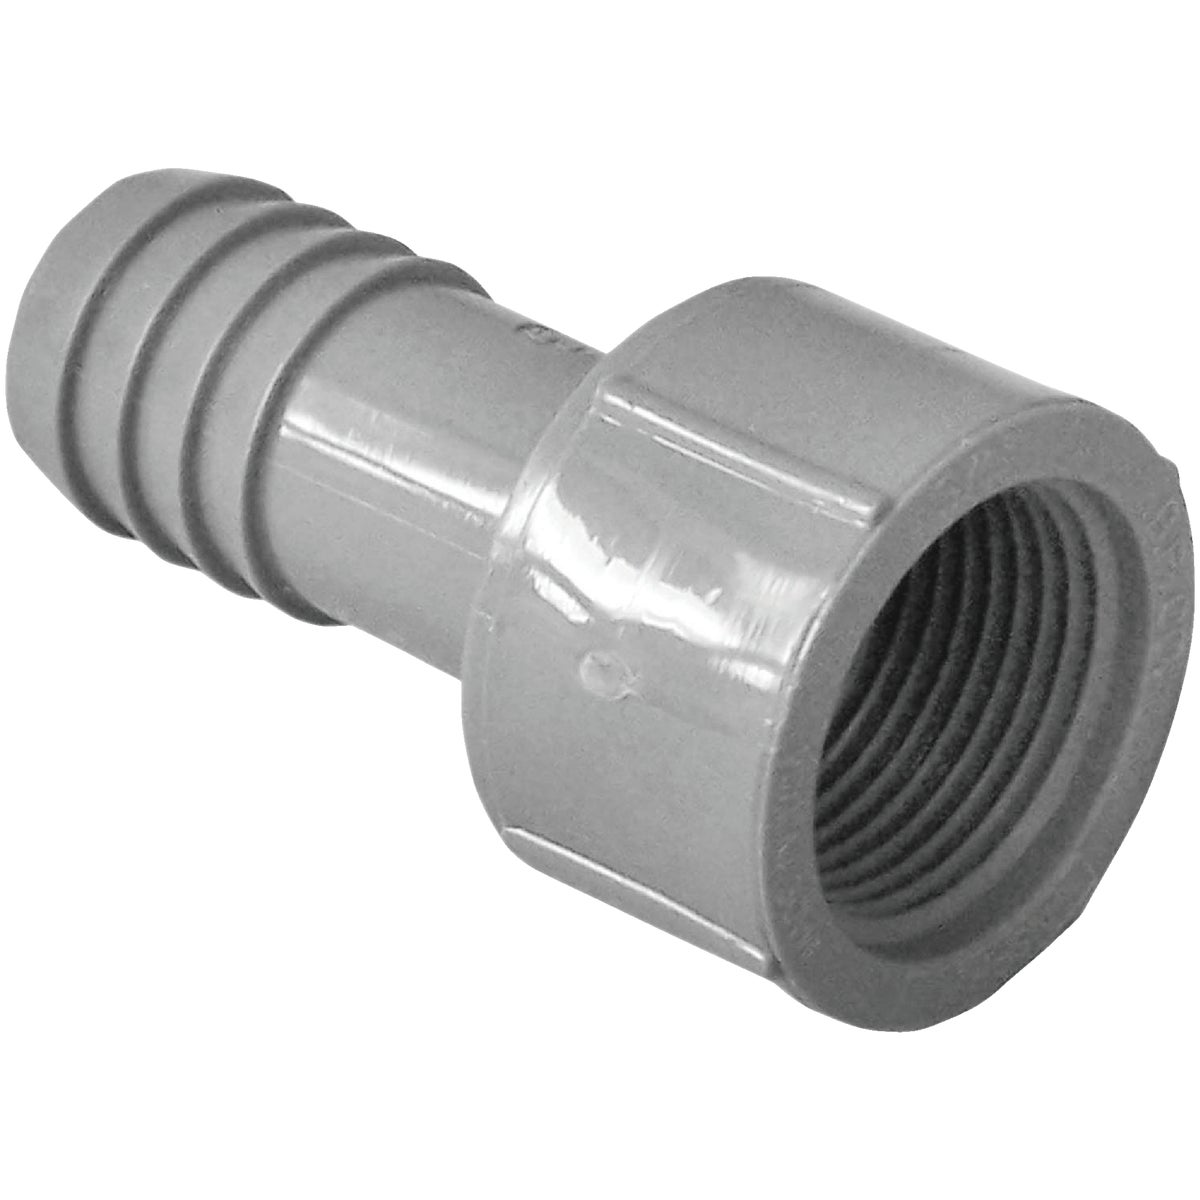 "3/4""POLY INSXFIP ADAPTER - 350307 by Genova Inc"